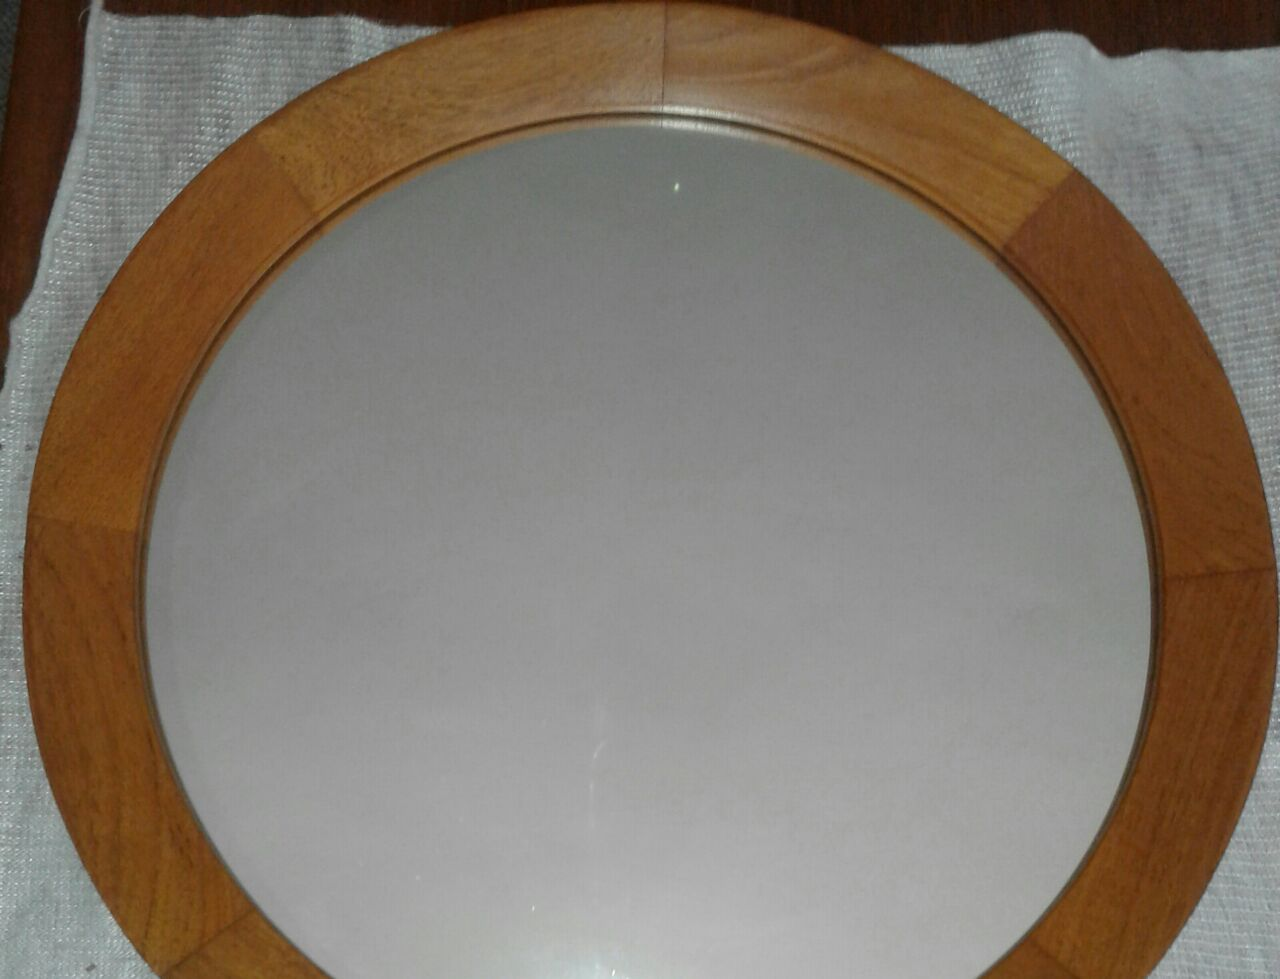 Mirror,round teak frame and back.Size 50cm